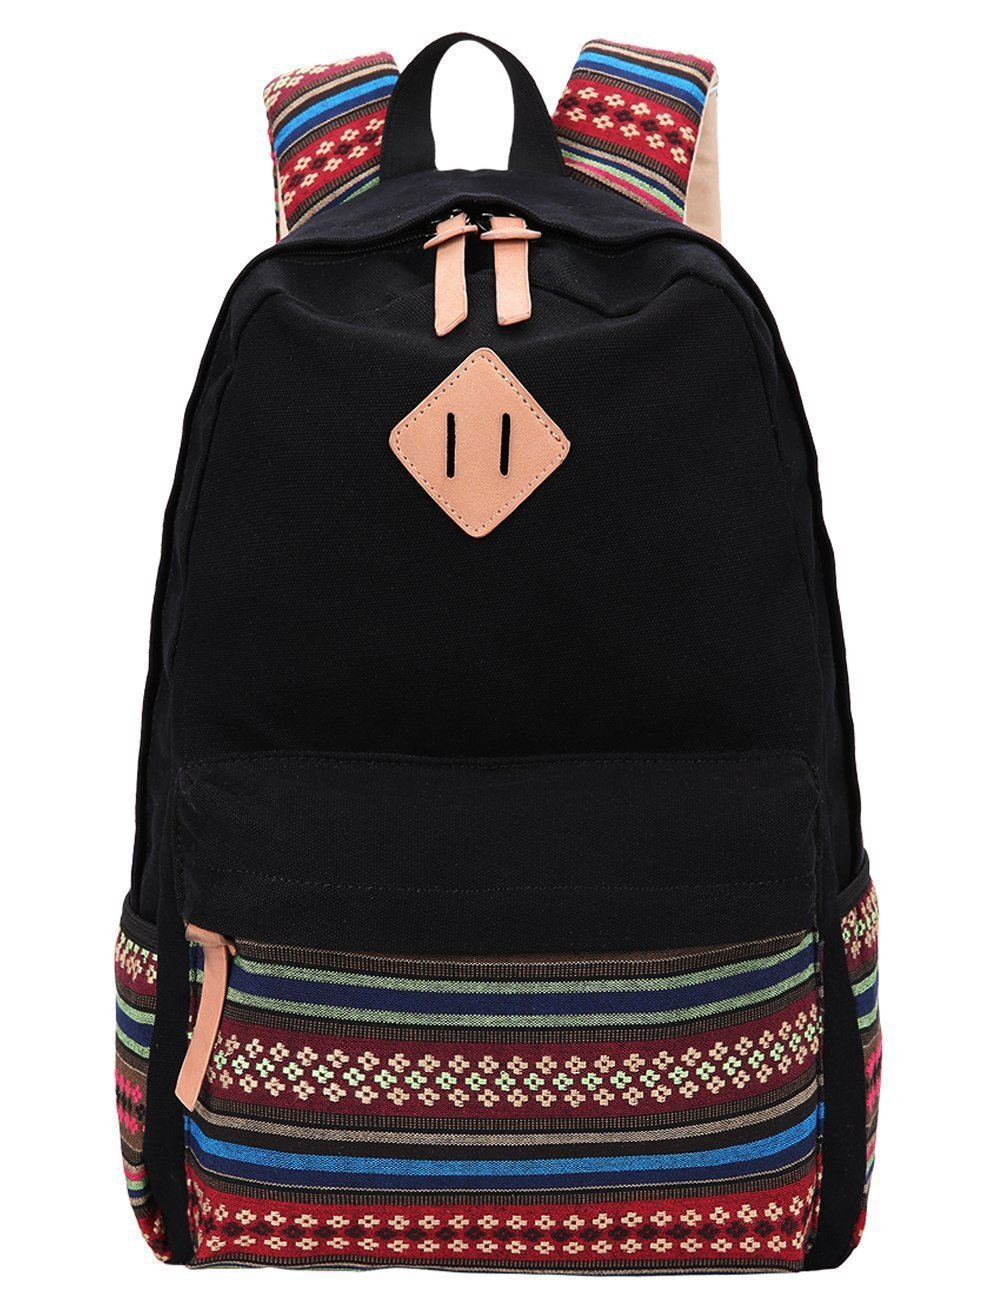 Black Canvas School Bag Backpack Girls, Hmxpls Bohemia Boho Style Unisex Fashionable Canvas Zip Backpack School College Laptop Bag for Teens Girls Students Casual Lightweight Travel Daypack Outdoor